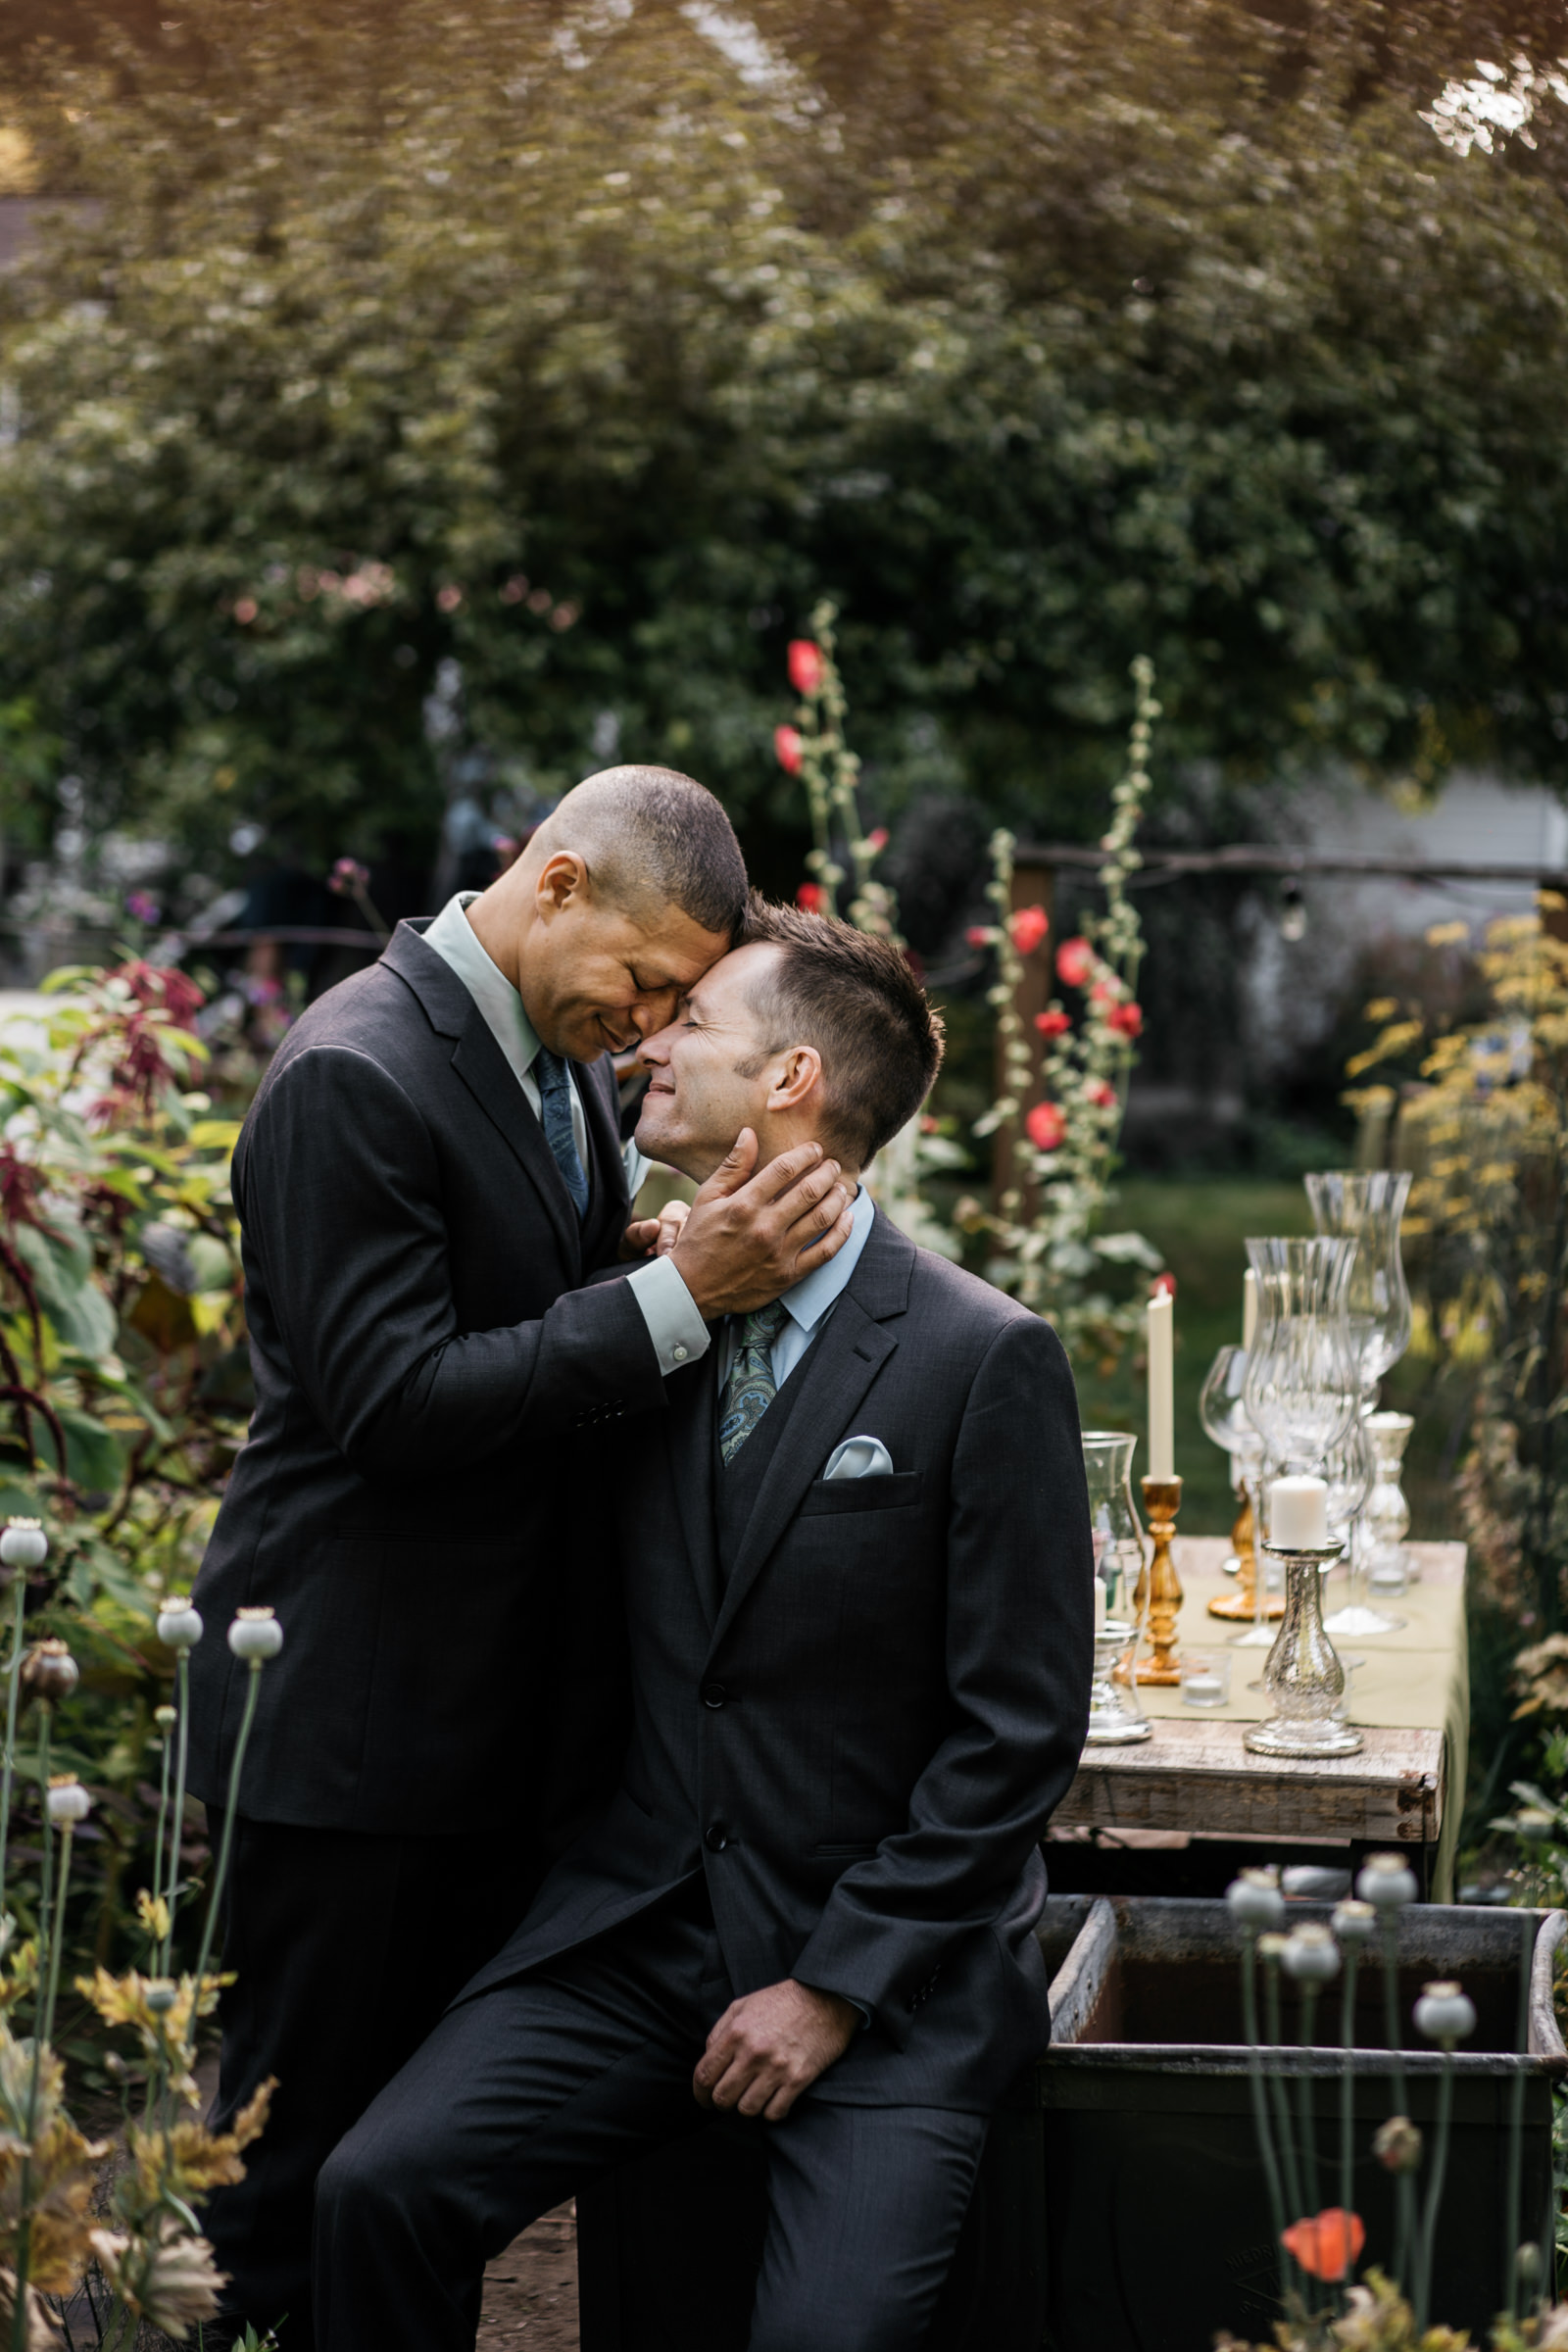 Grooms sharing a moment - photo by Sasha Reiko Photography